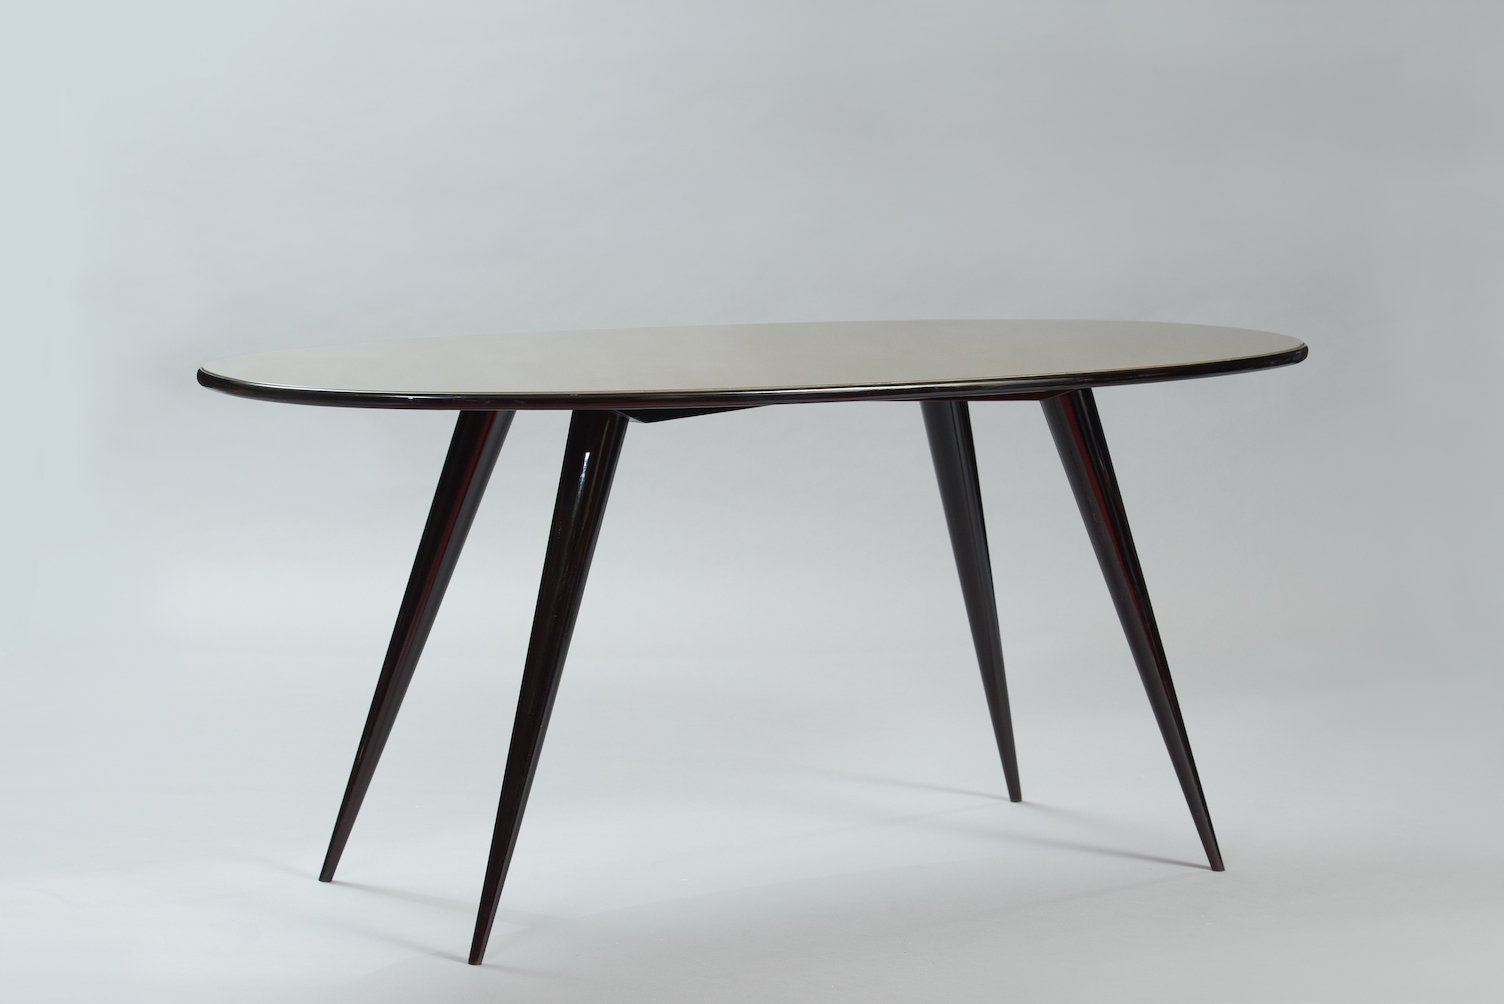 midcentury oval italian dining table for sale at pamono - midcentury oval italian dining table